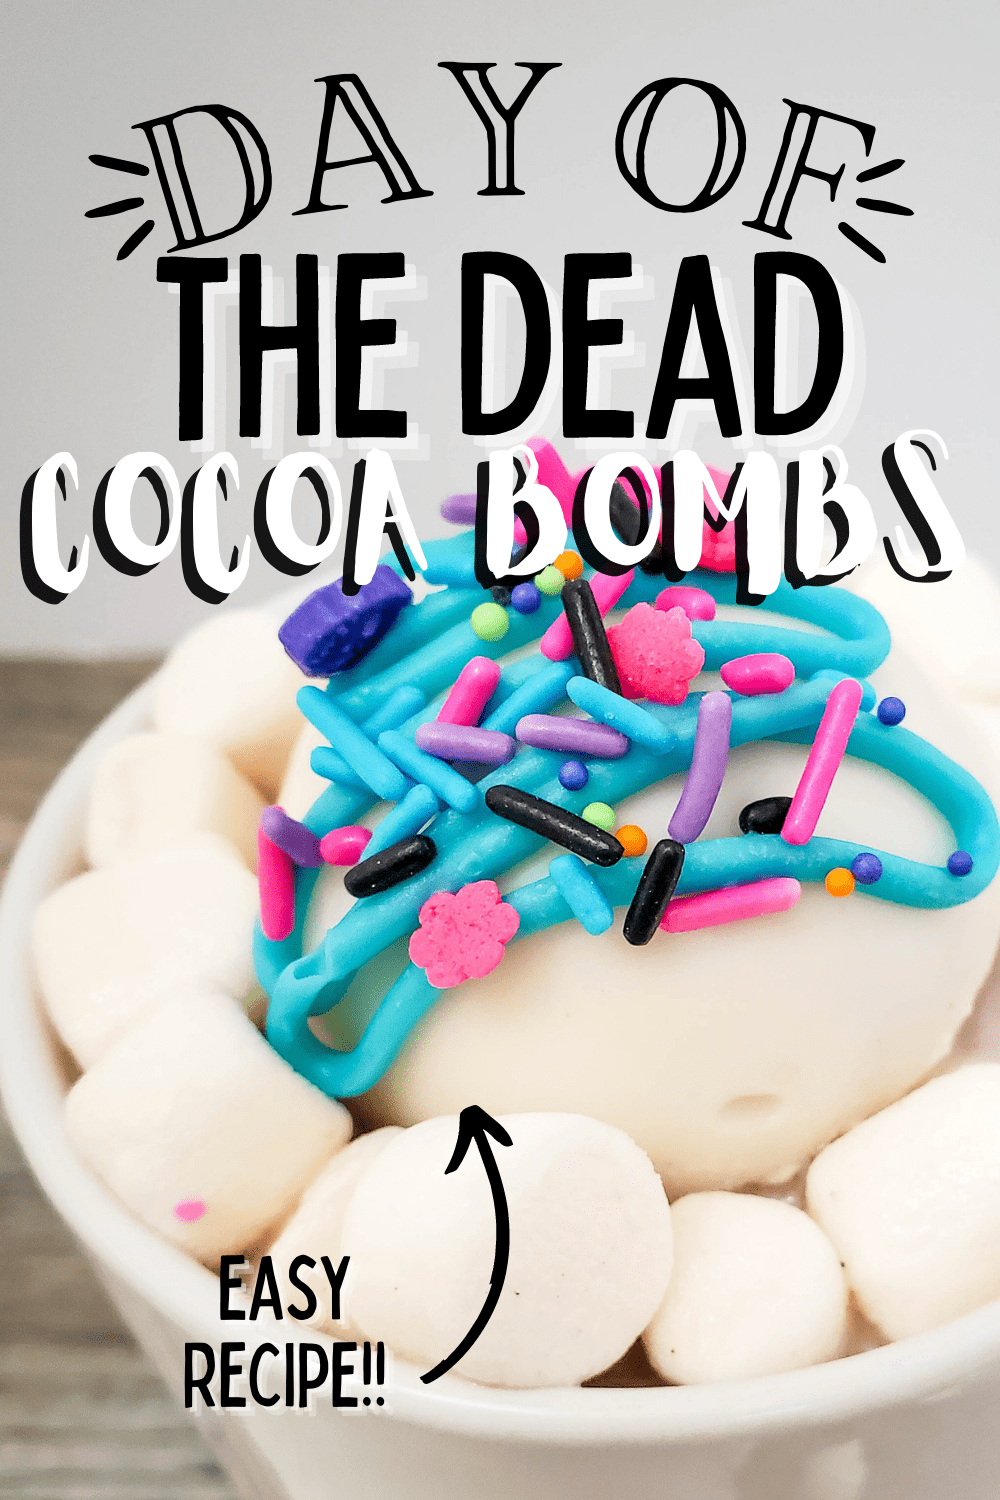 Day Of The Dead White Chocolate Hot Cocoa Bombs ~ Video Included